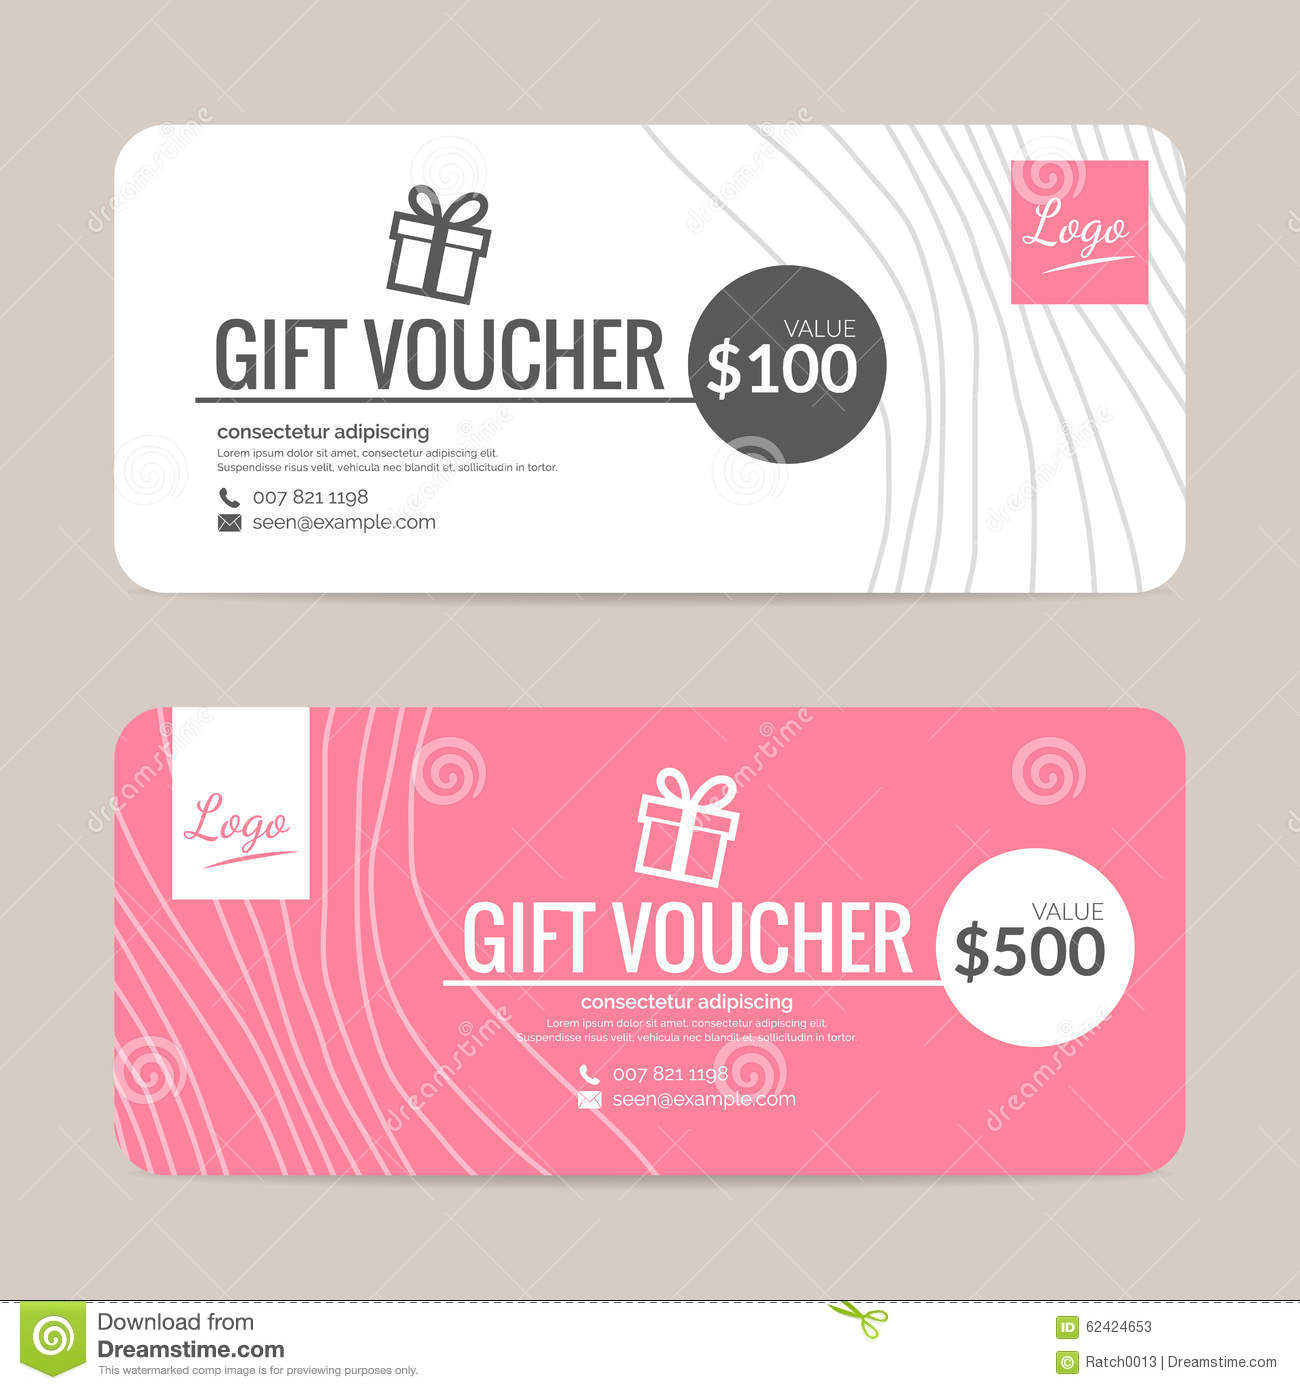 Gift Voucher Template Vector Image 62424653 – Template for a Voucher